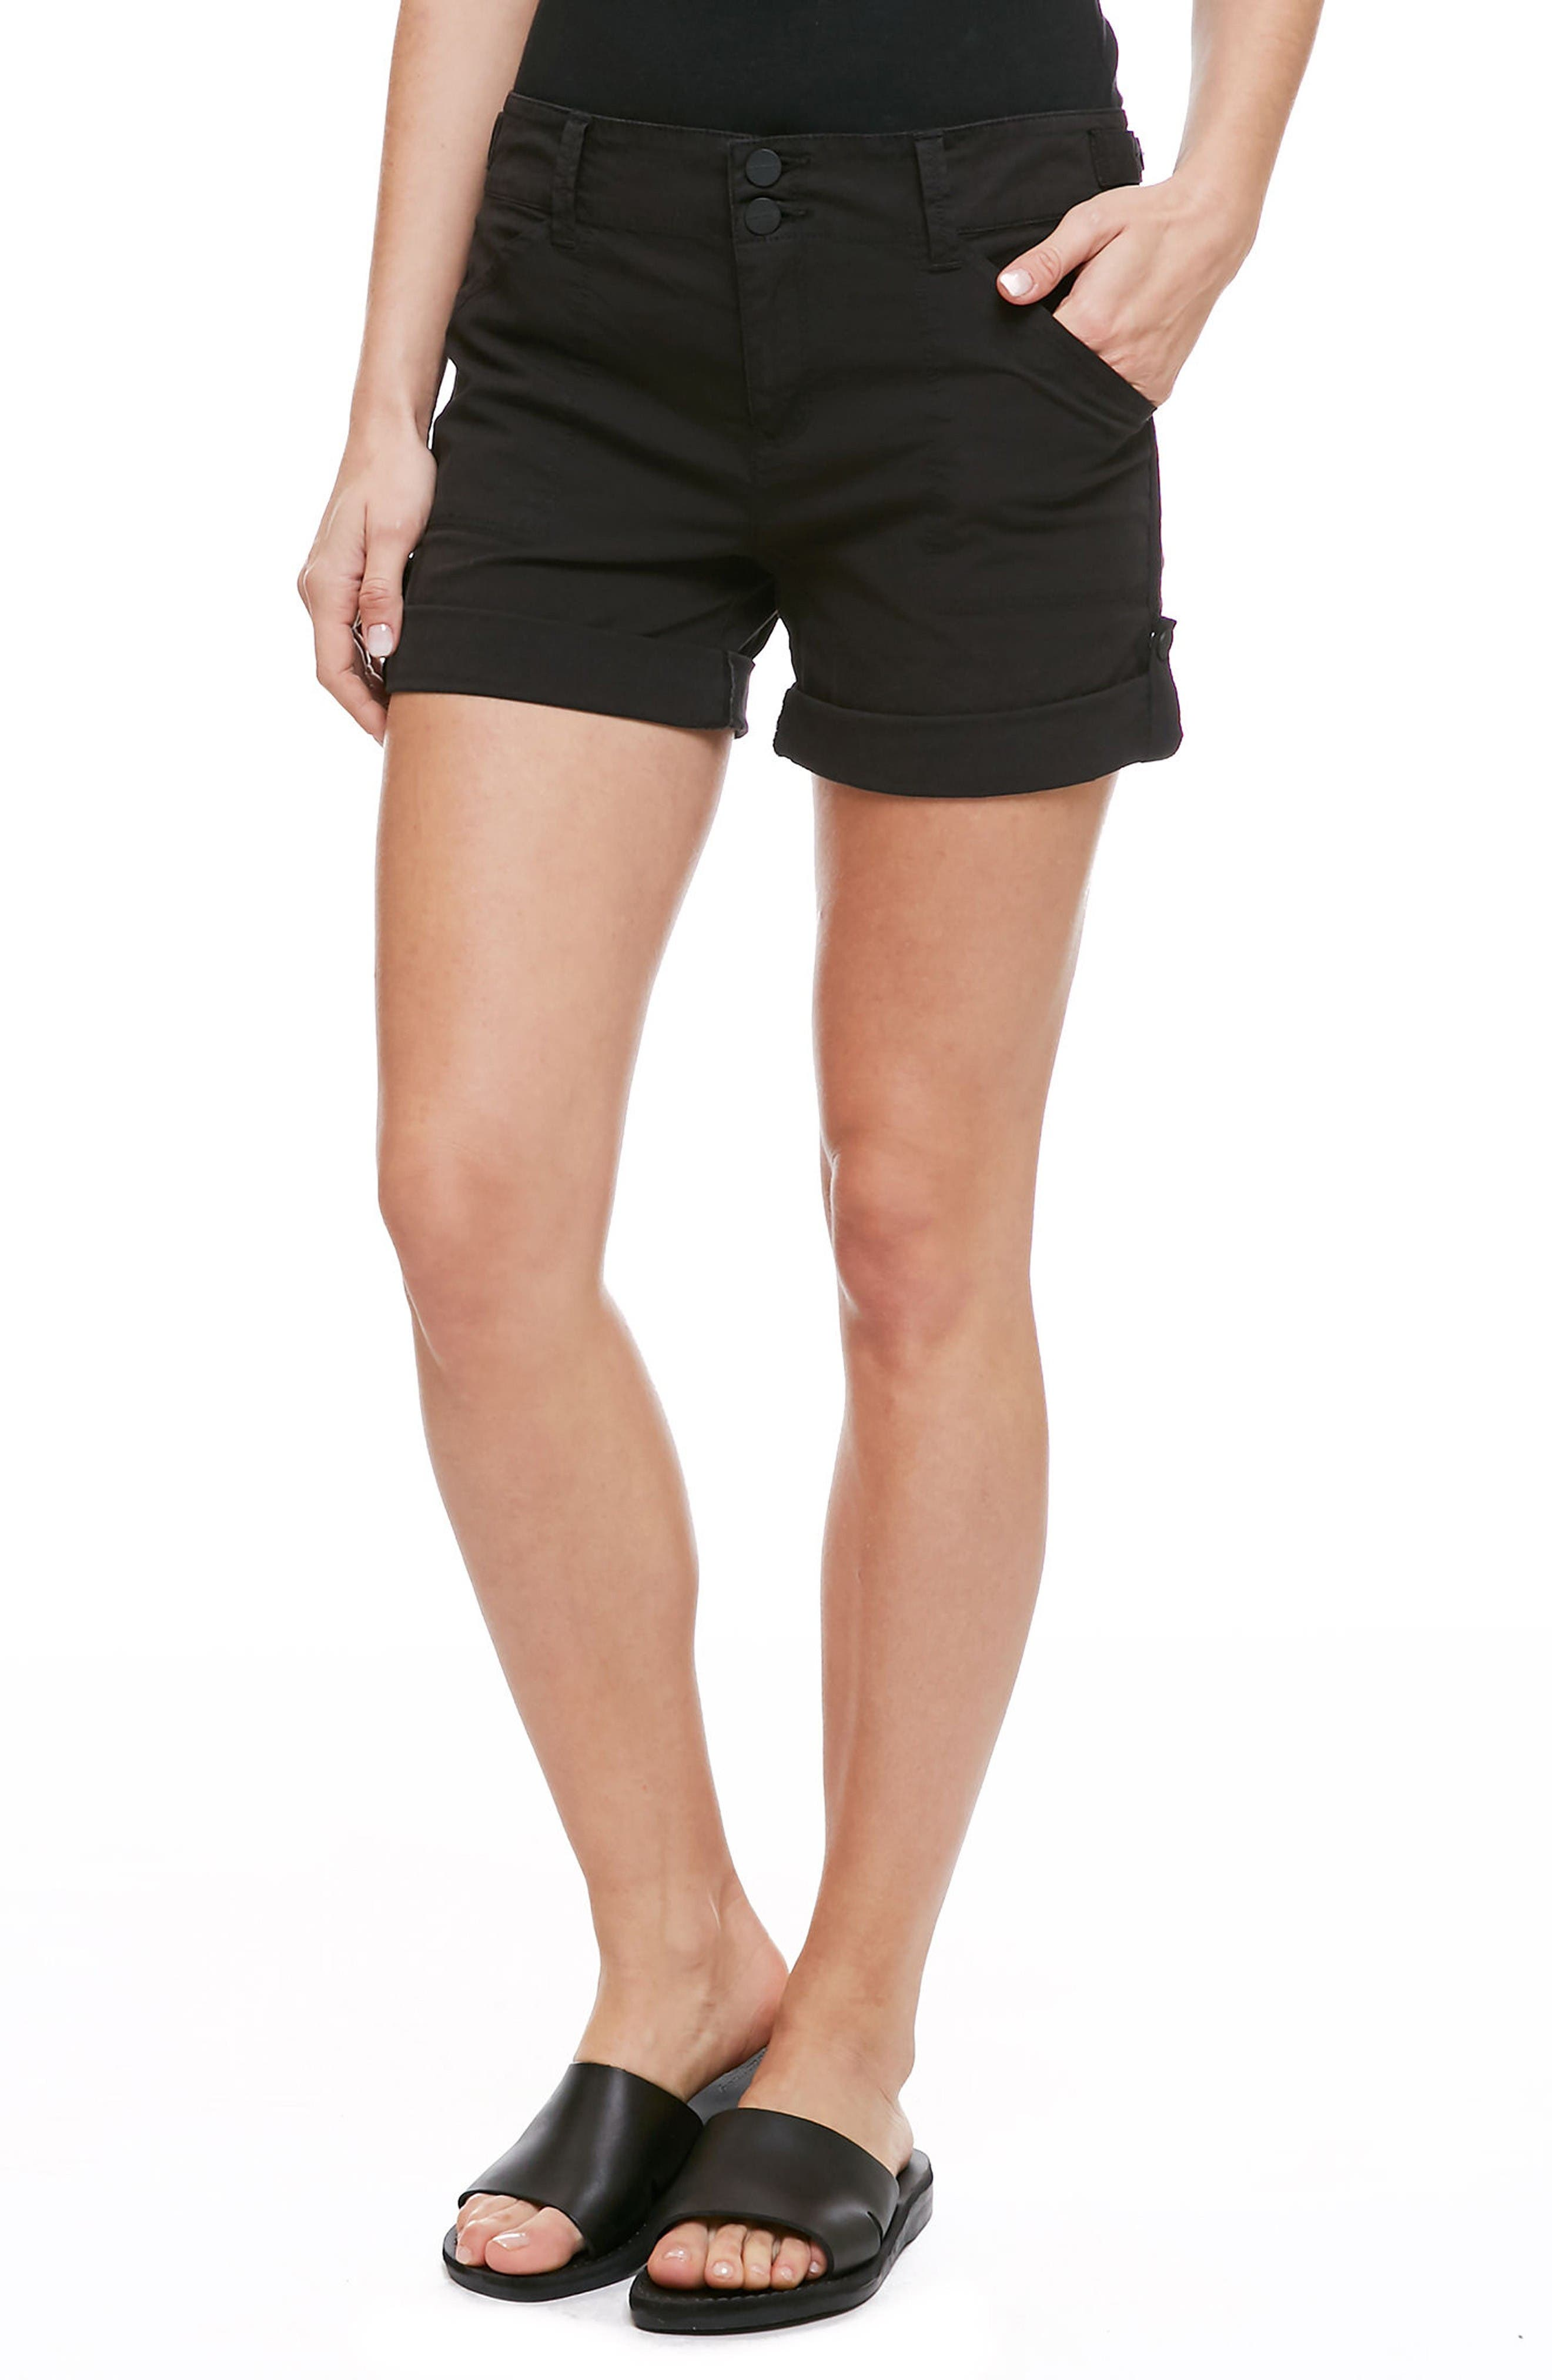 Habitat Shorts,                             Main thumbnail 1, color,                             Black